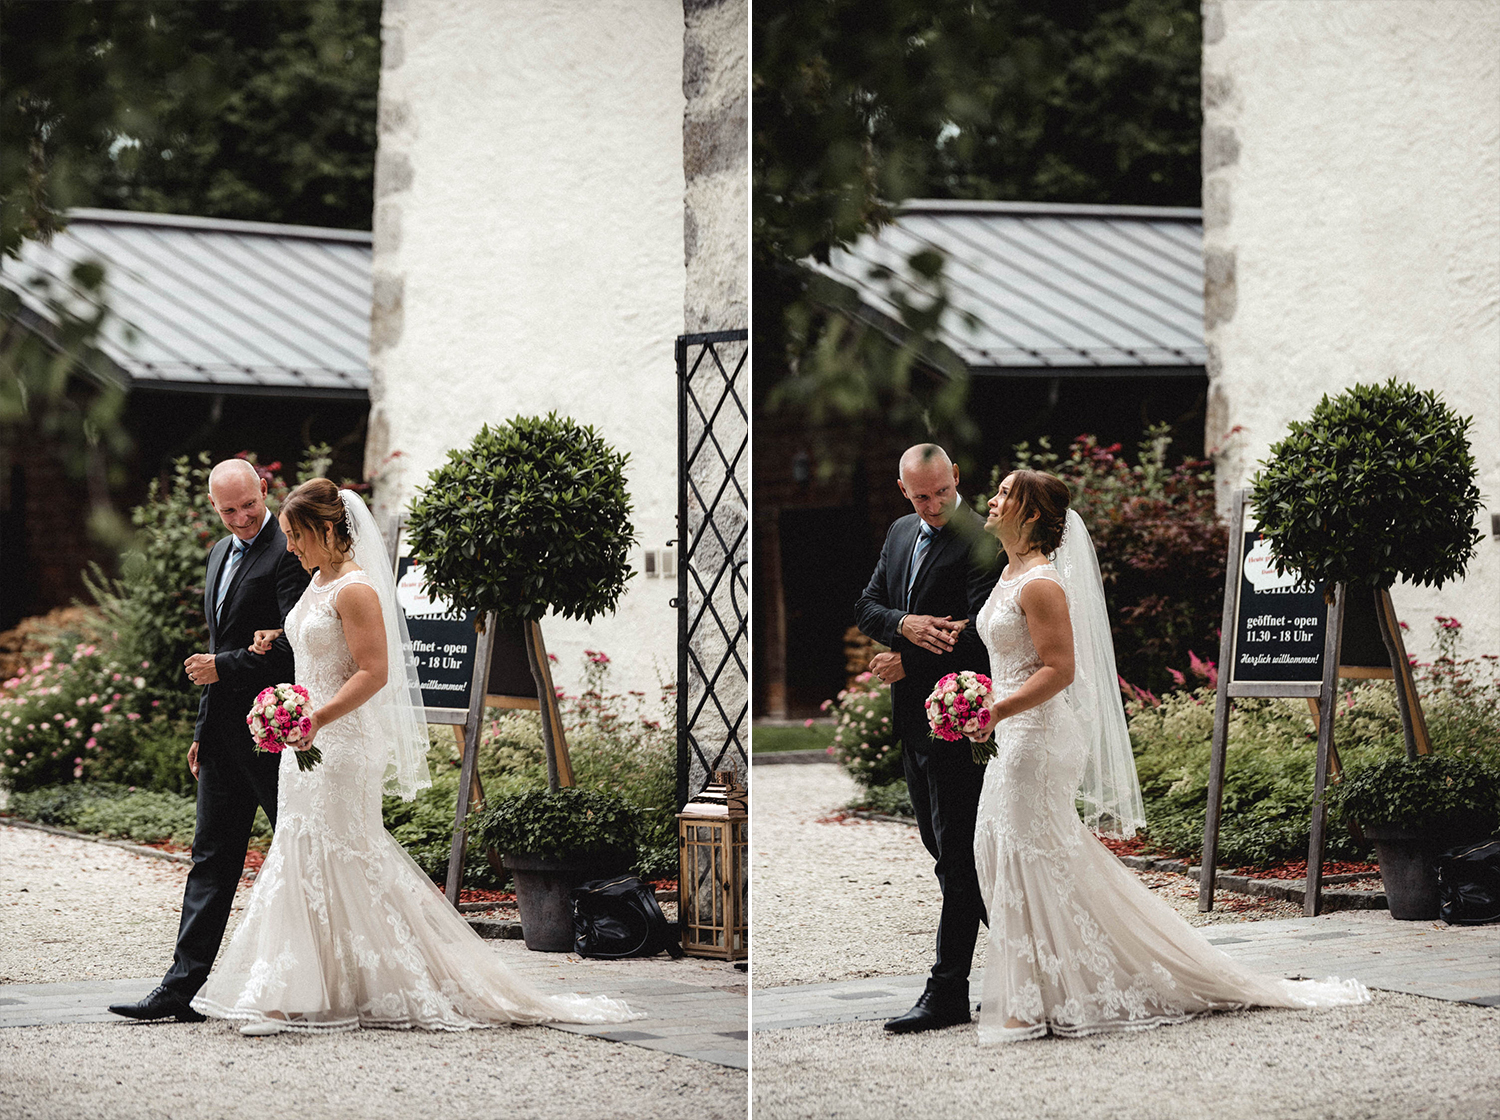 Wedding_Schloss_Prielau_08